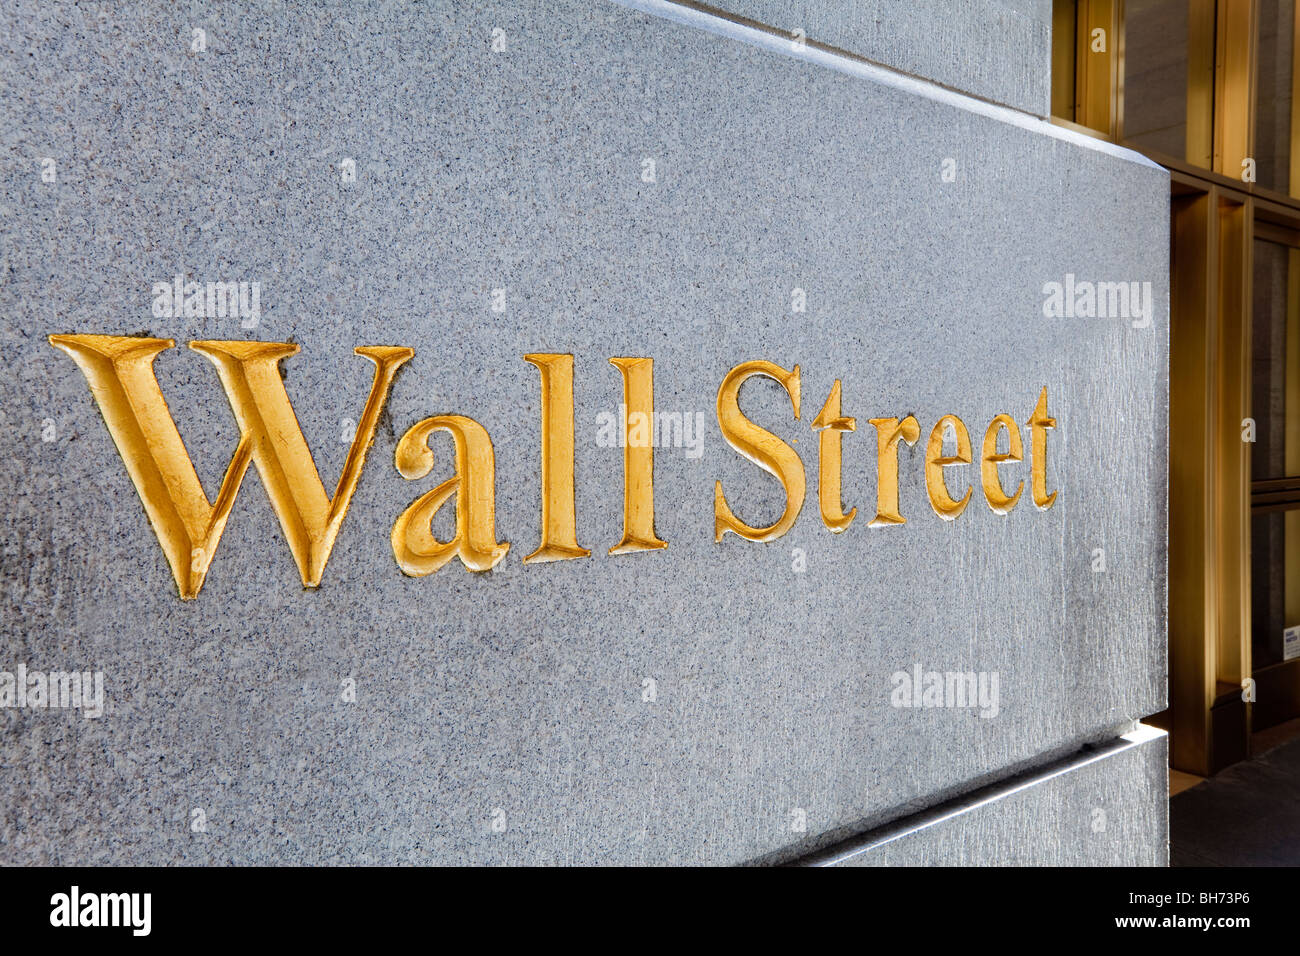 USA, New York City, Manhattan, Wall Street sign in the downtown Financial District of Manhattan - Stock Image